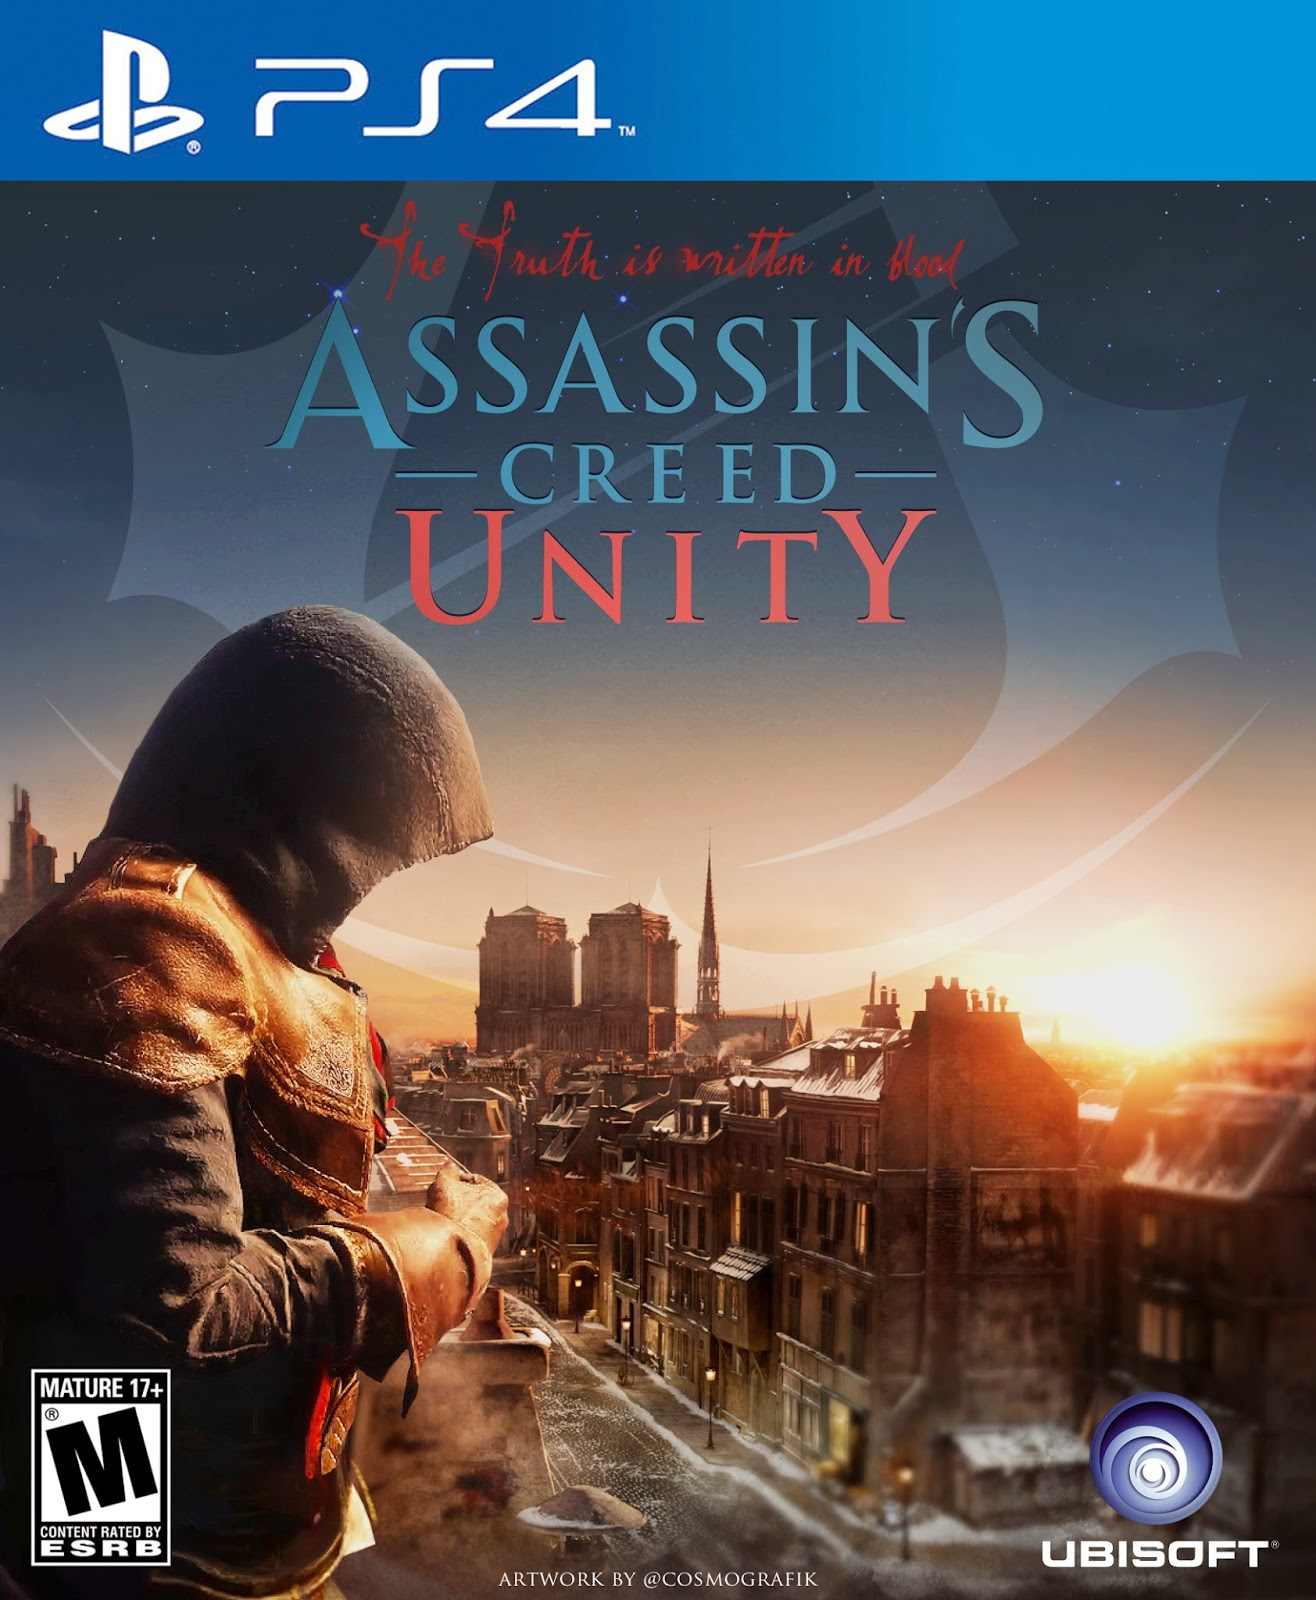 assassin s creed unity is an action adventure and infiltration developed by ubisoft montreal and published by ubisoft video game the game is scheduled for